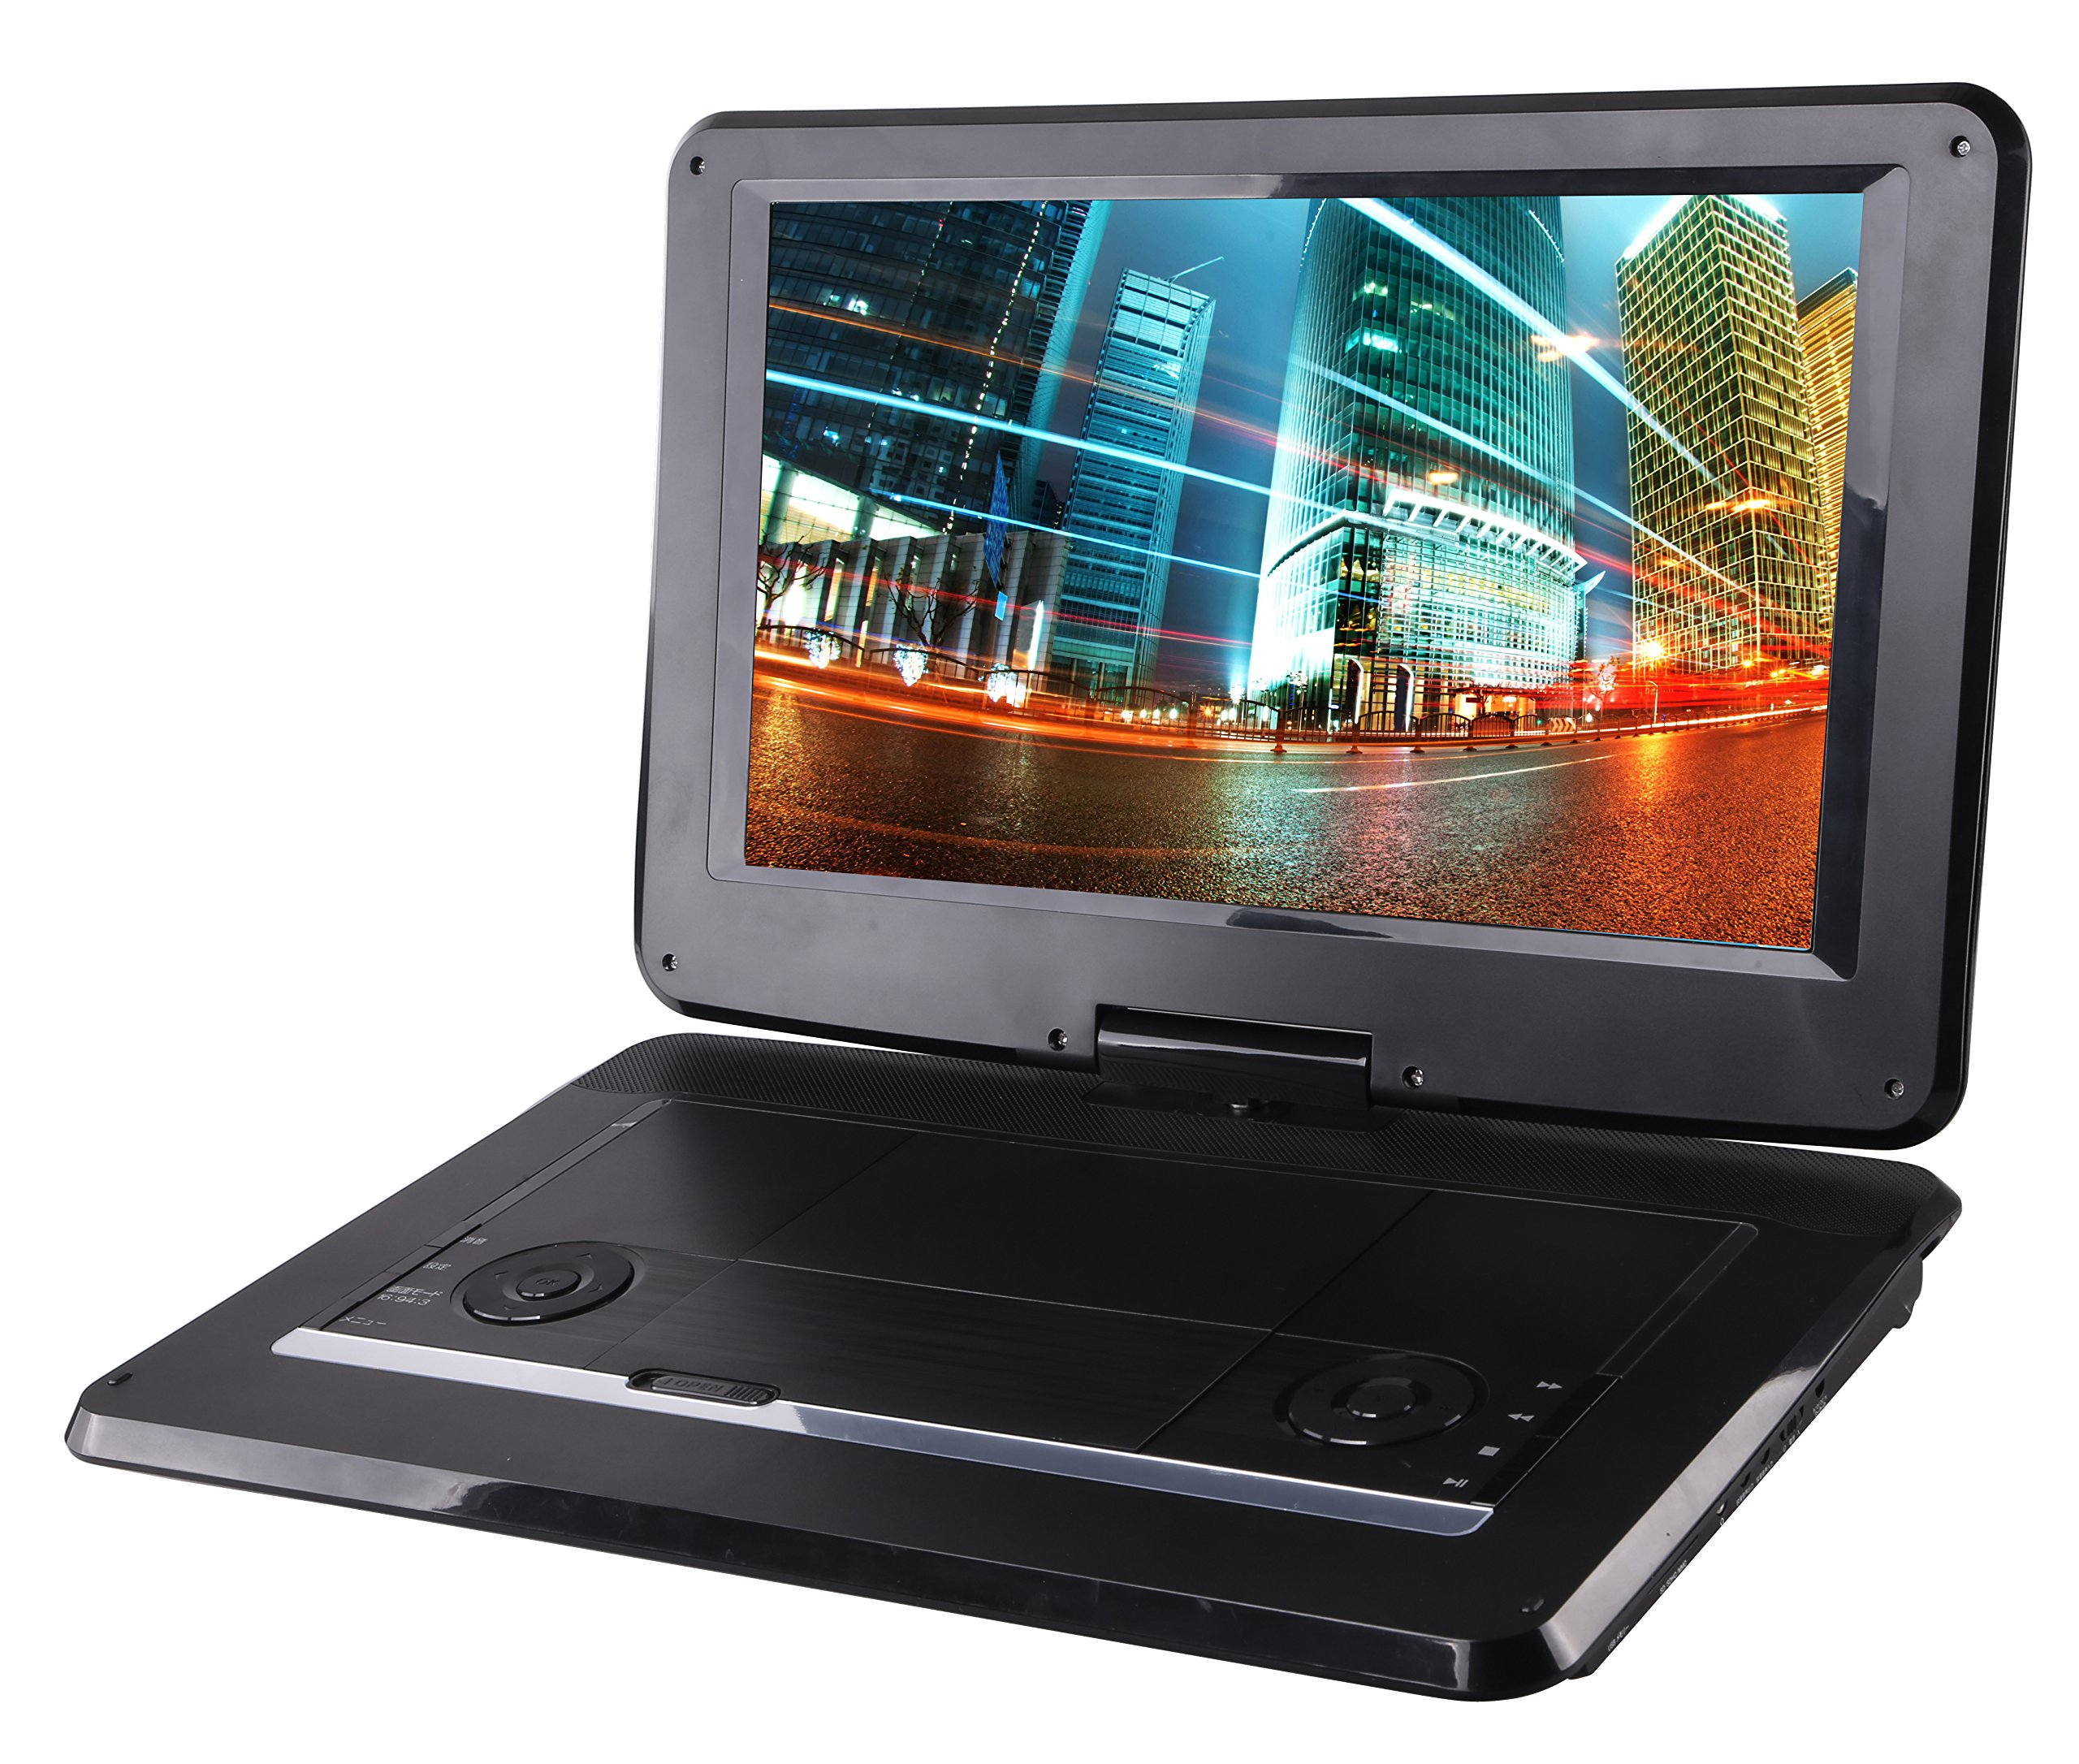 Sylvania 15.6-Inch Swivel Screen Portable DVD Player with USB & SD Card Slot & Rechargeable Battery by Sylvania